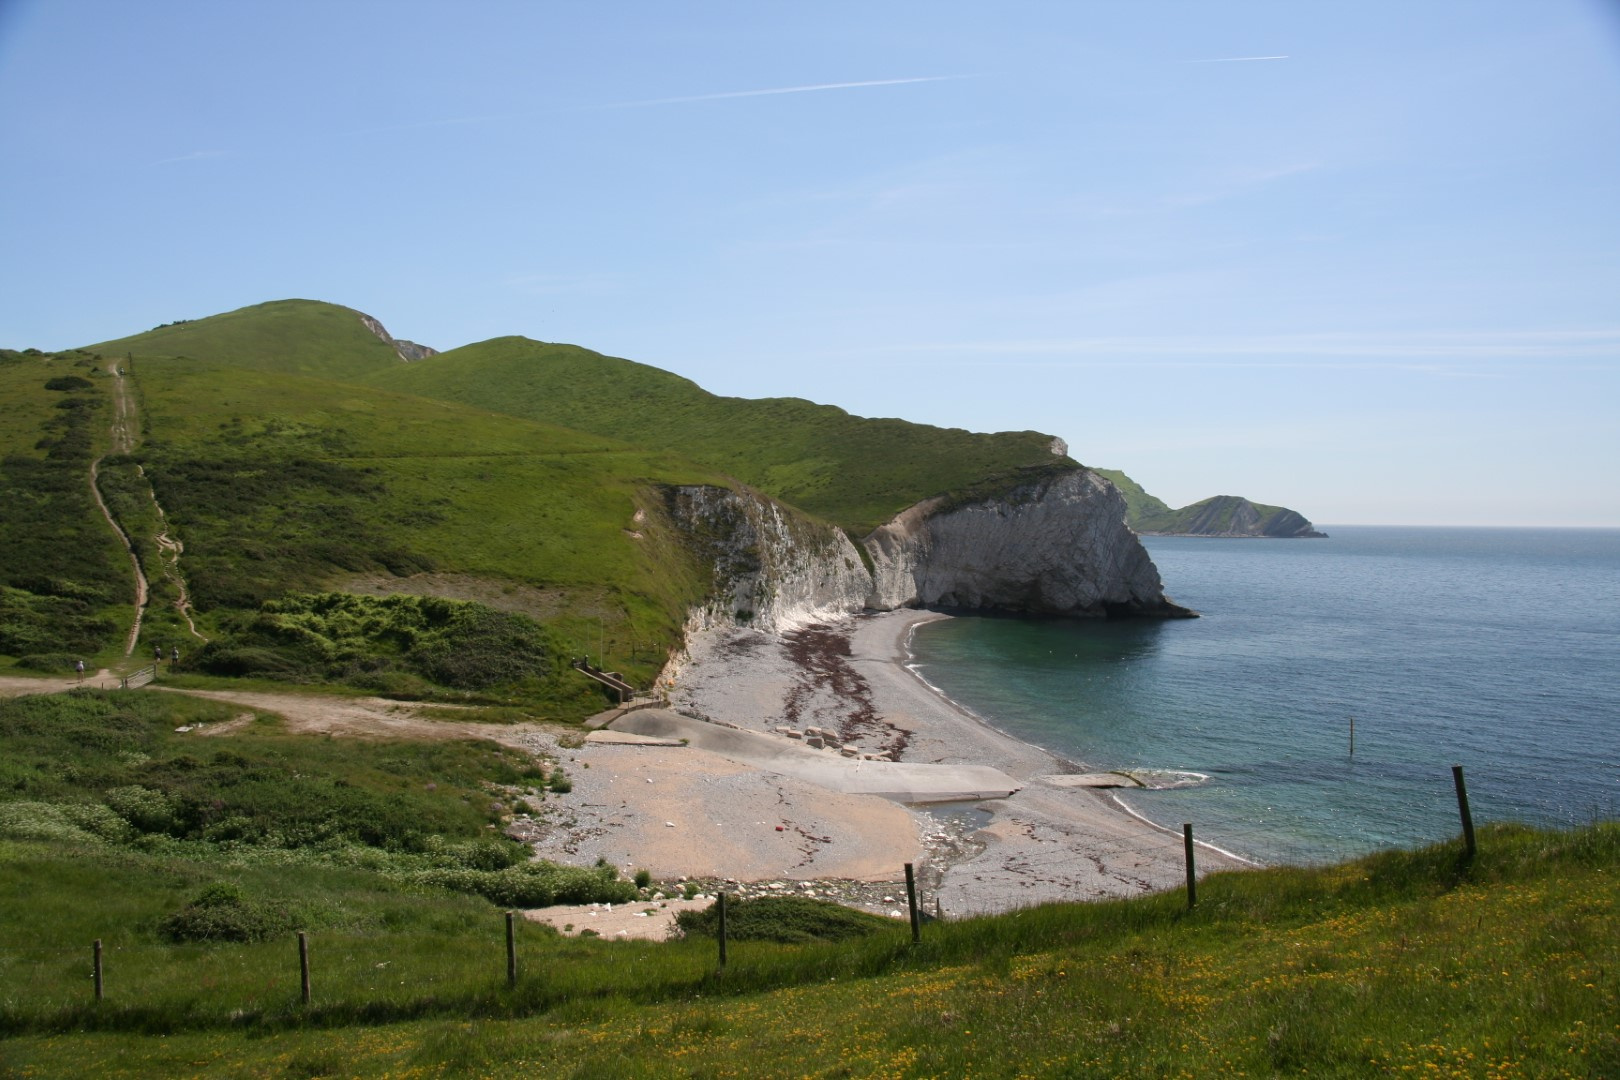 Arish Mell with the coast path on the left.